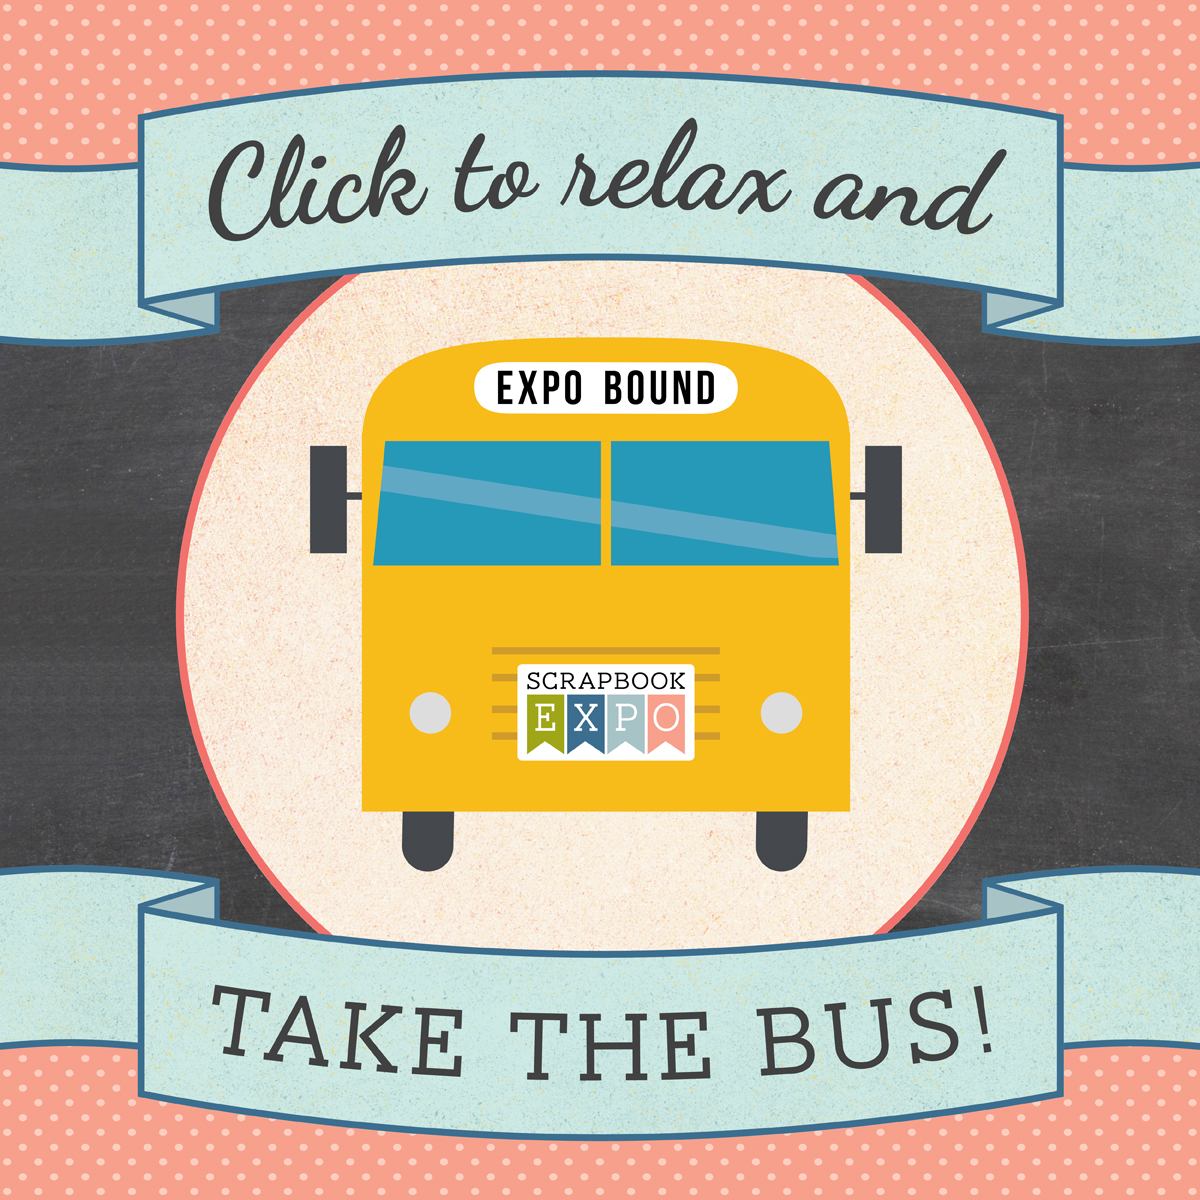 Take the bus to the Expo